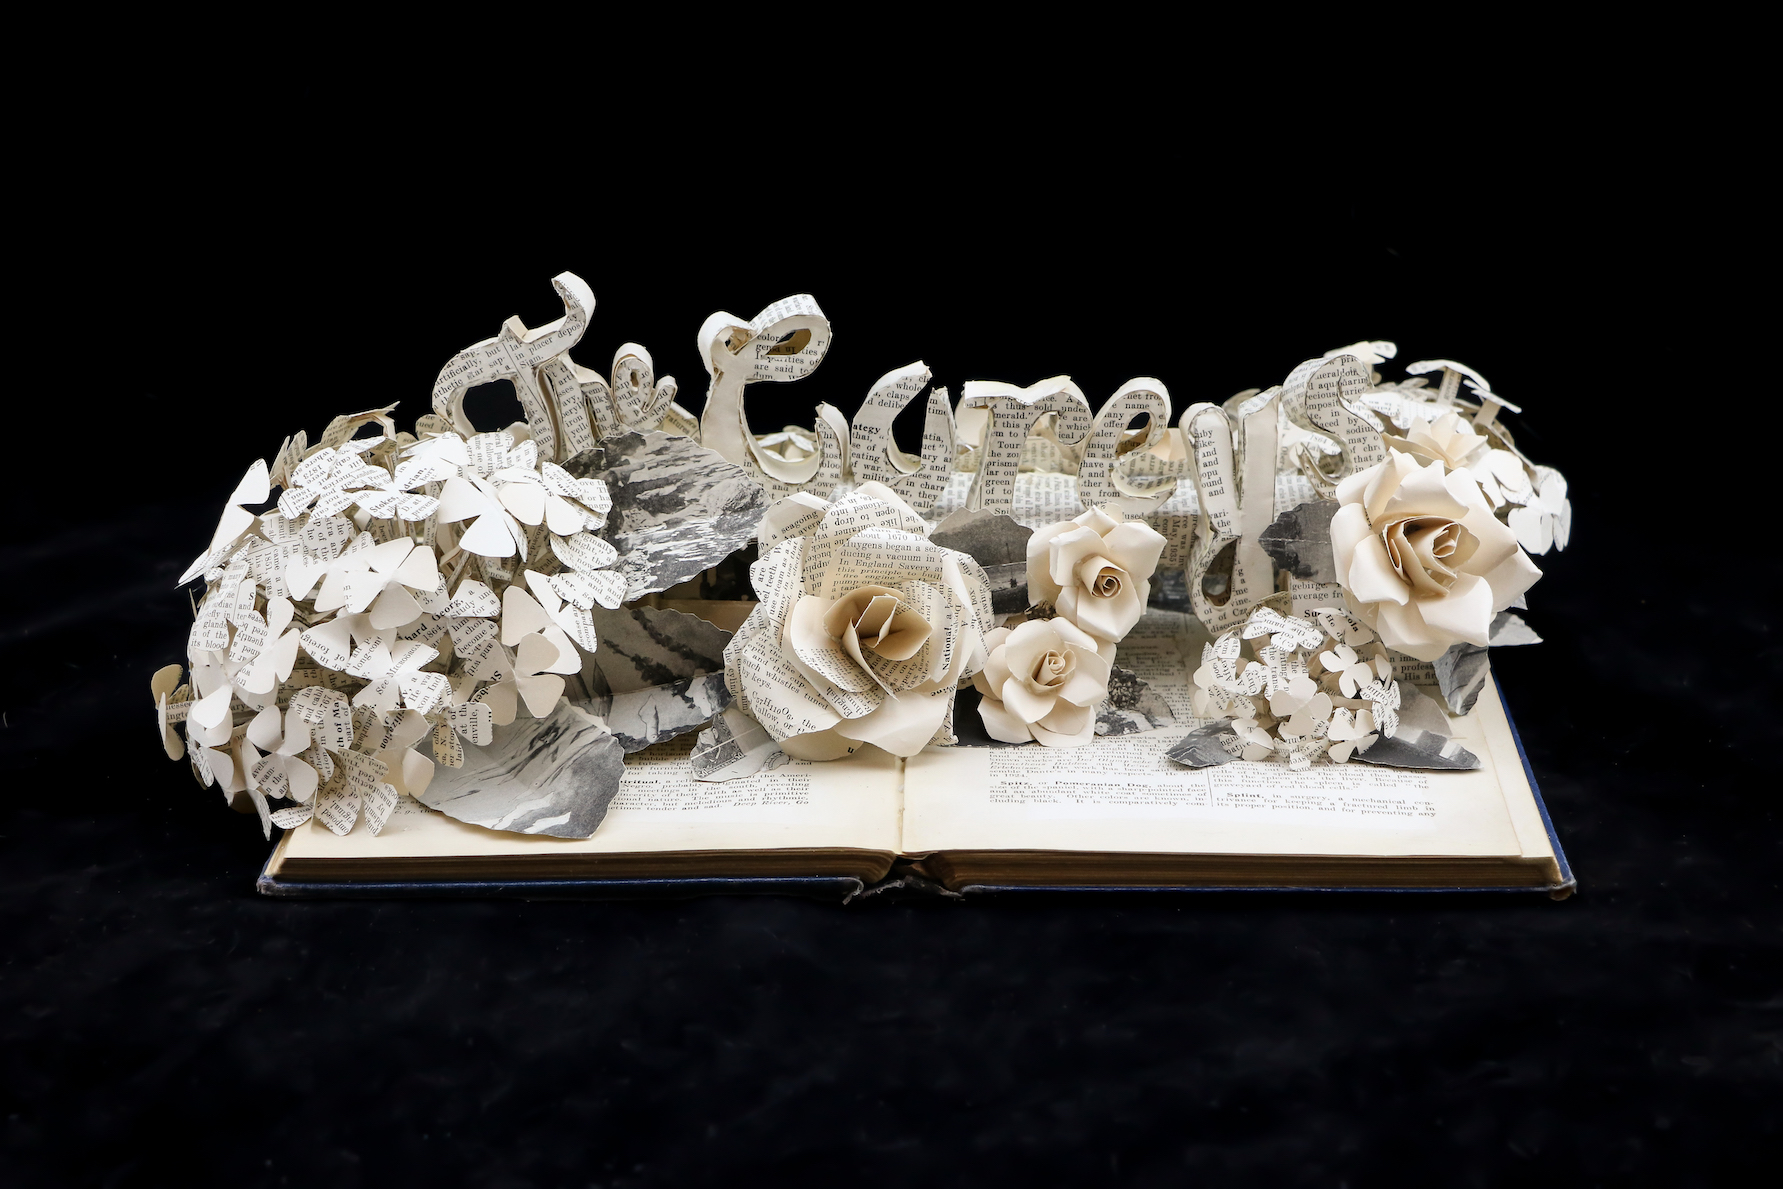 Book Sculpture: The Coreys